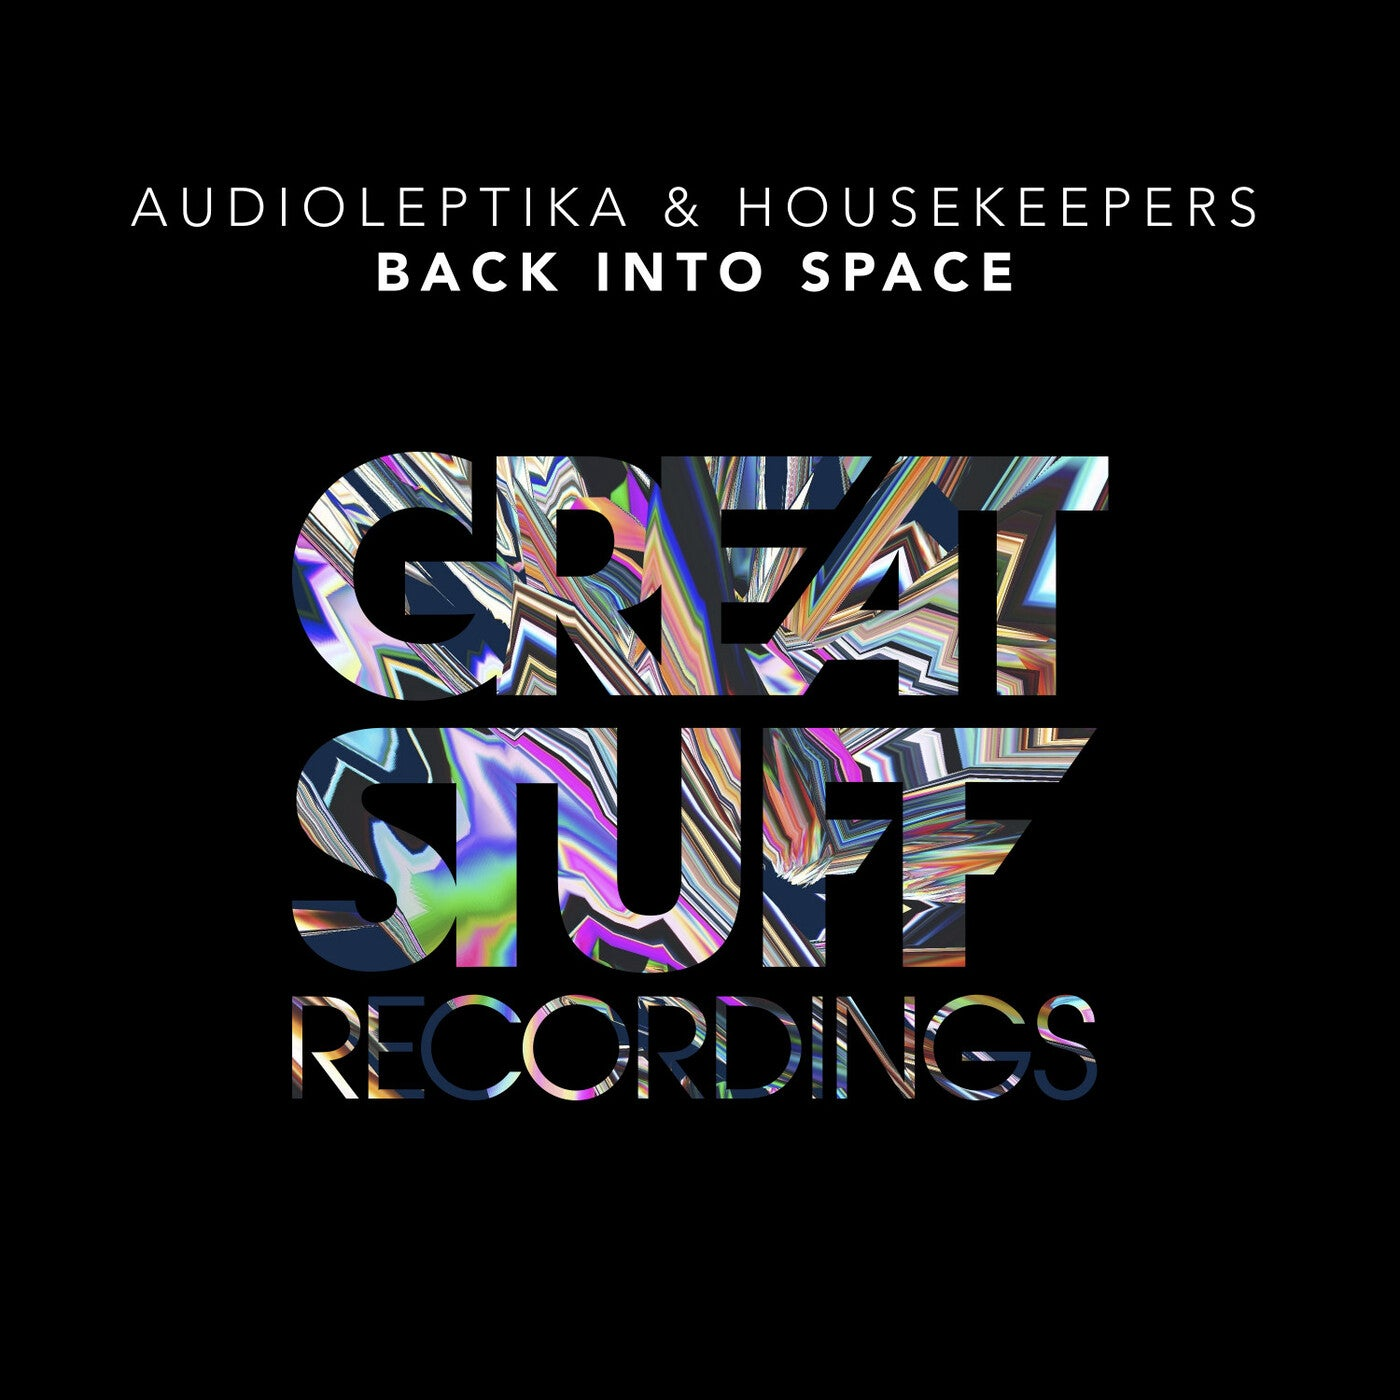 Audioleptika, HouseKeepers - Back into Space (2021)